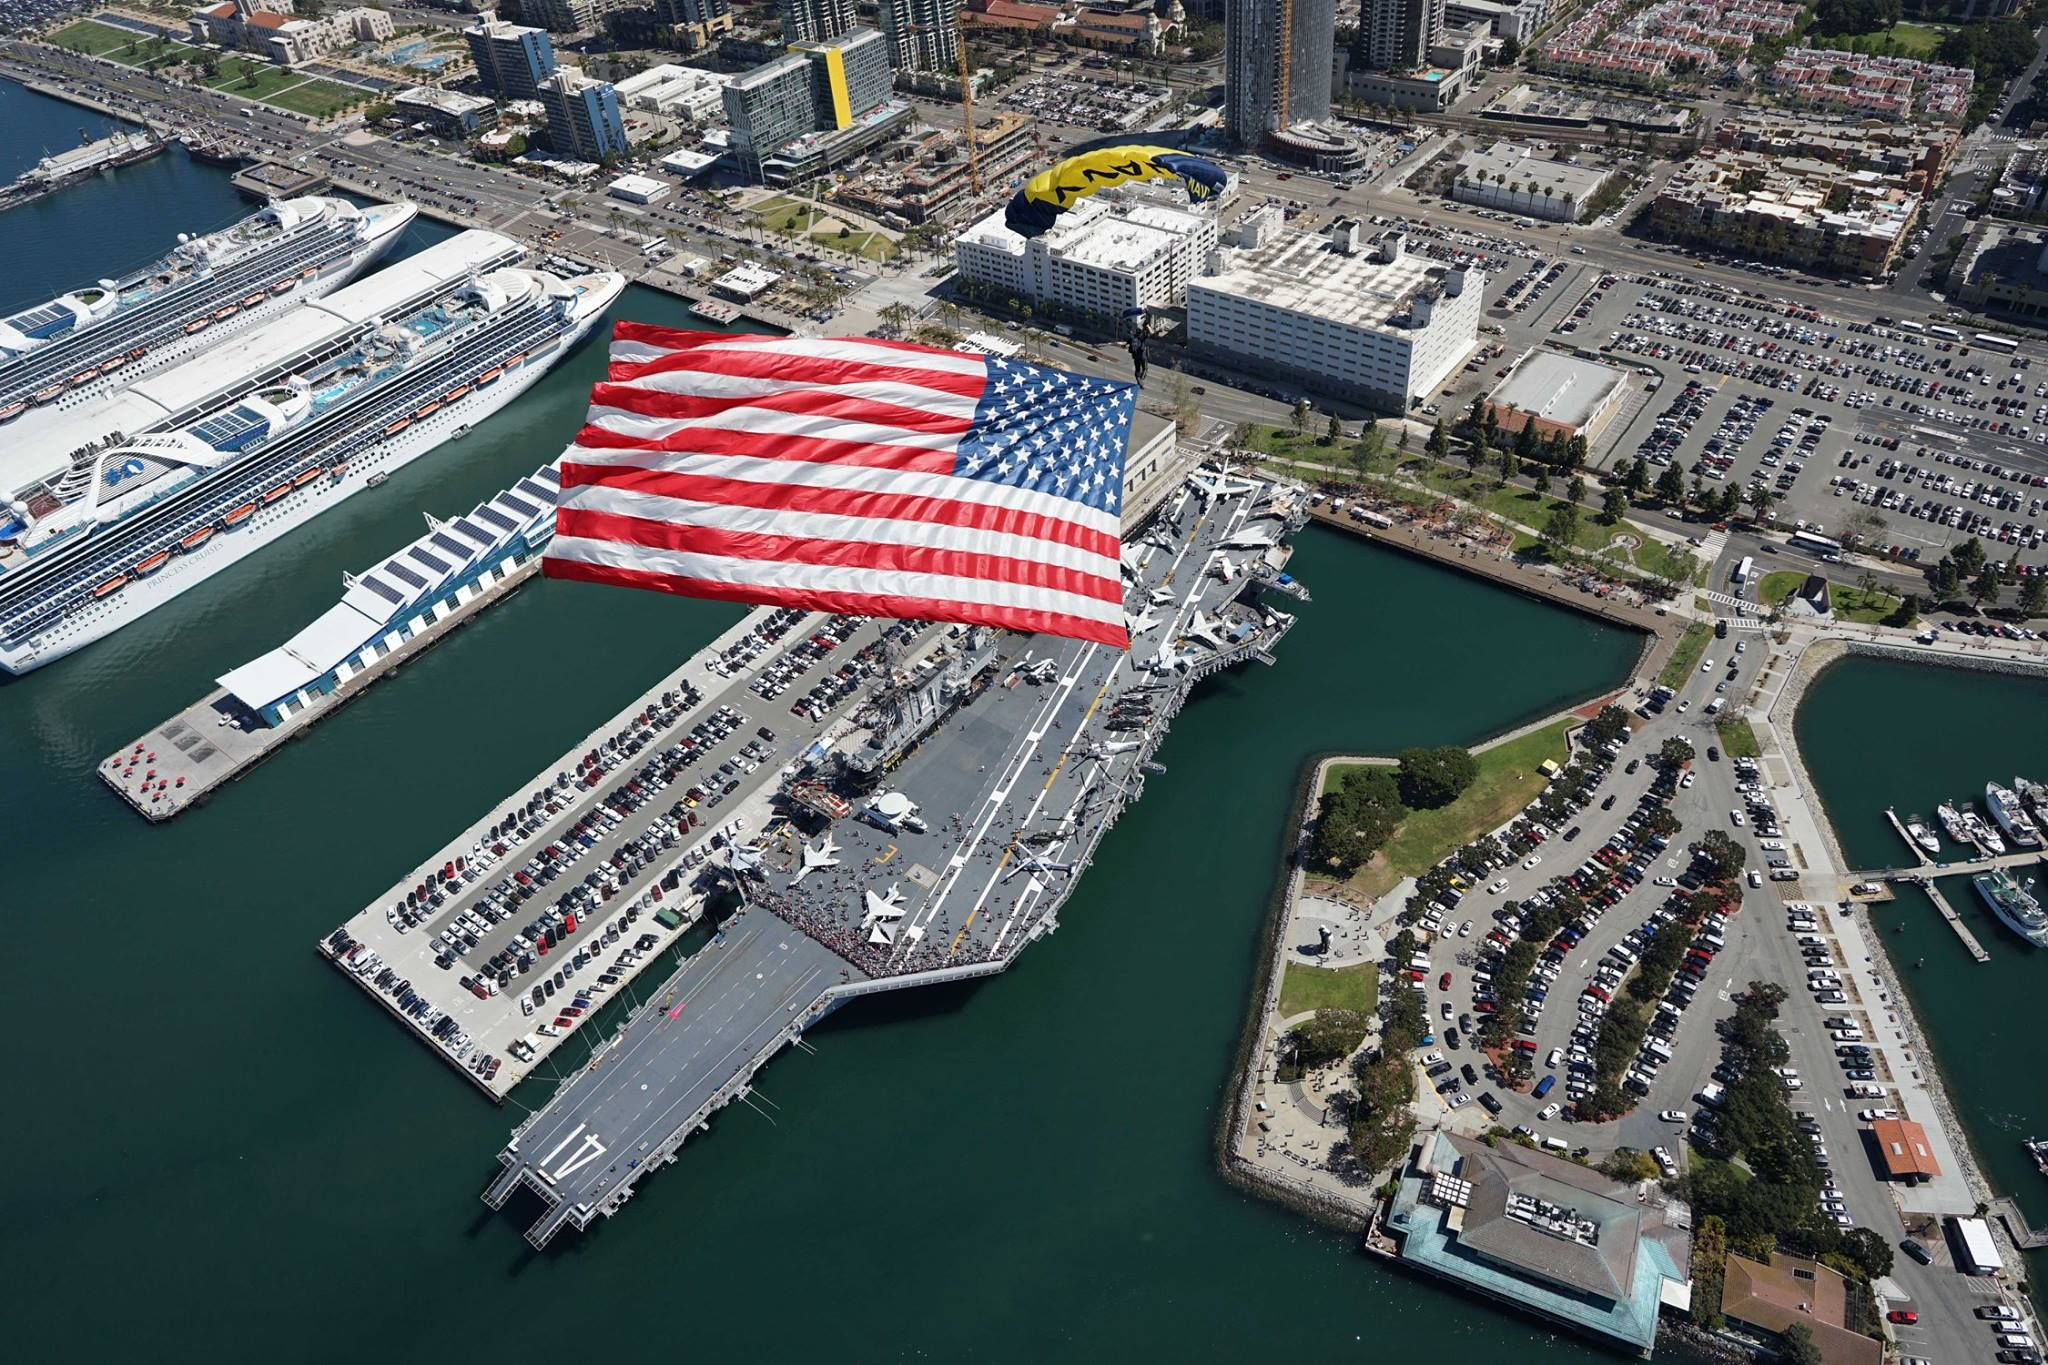 Leap Frogs above the USS Midway Museum in San Diego March 29, 2017